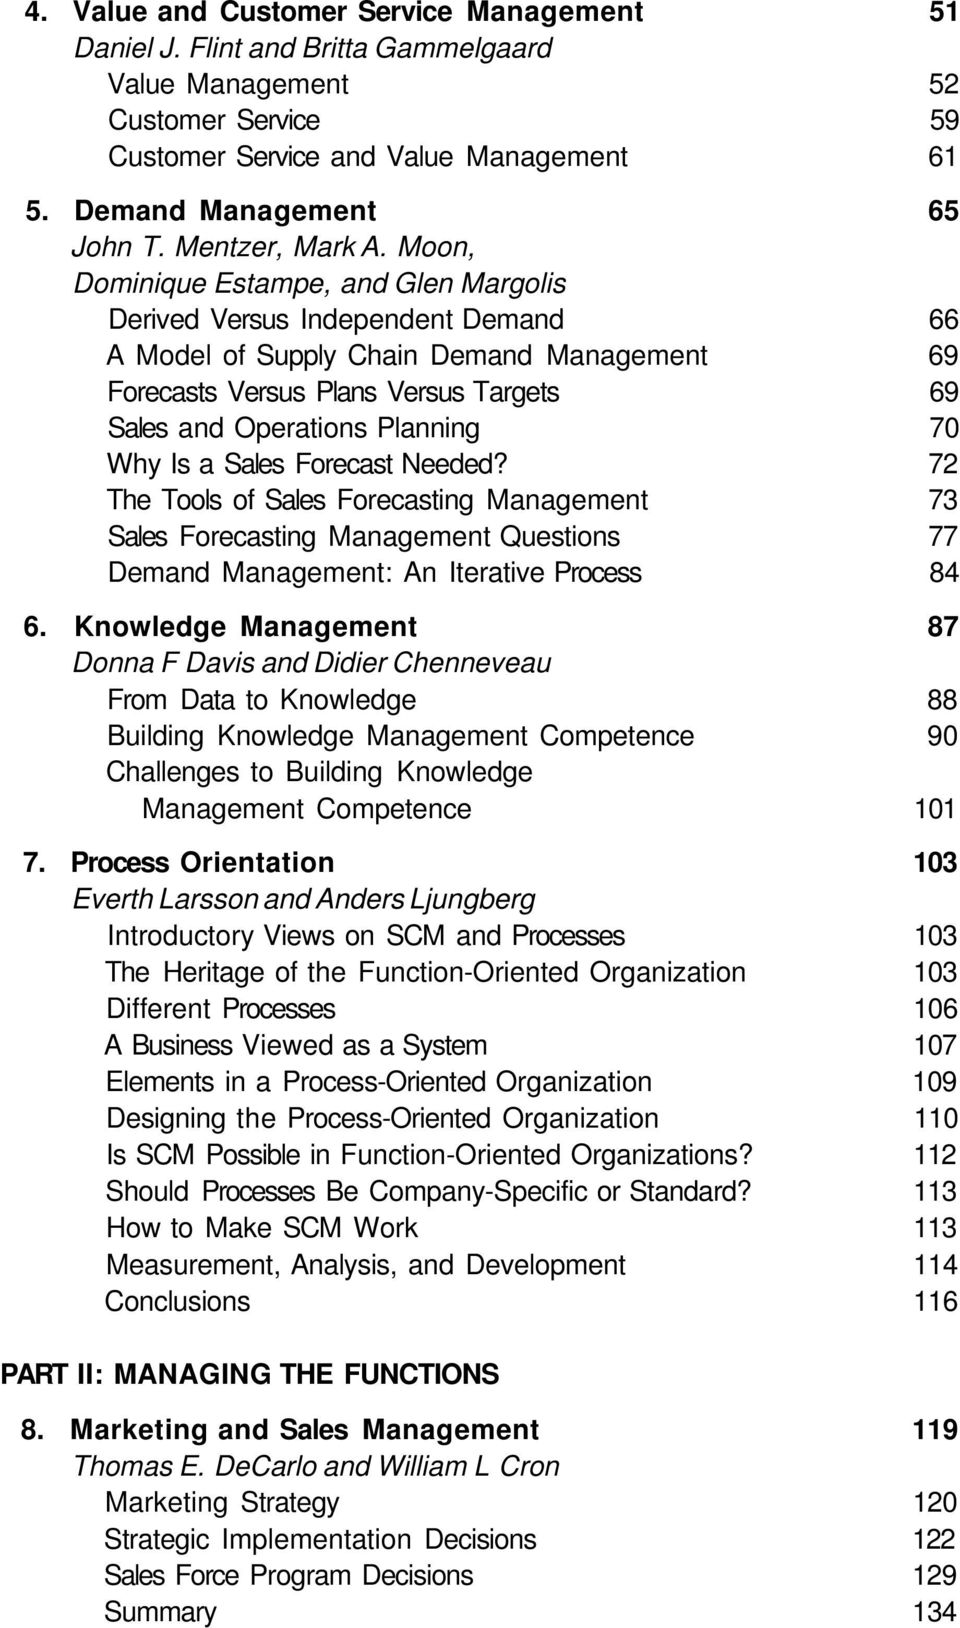 Moon, Dominique Estampe, and Glen Margolis Derived Versus Independent Demand 66 A Model of Supply Chain Demand Management 69 Forecasts Versus Plans Versus Targets 69 Sales and Operations Planning 70